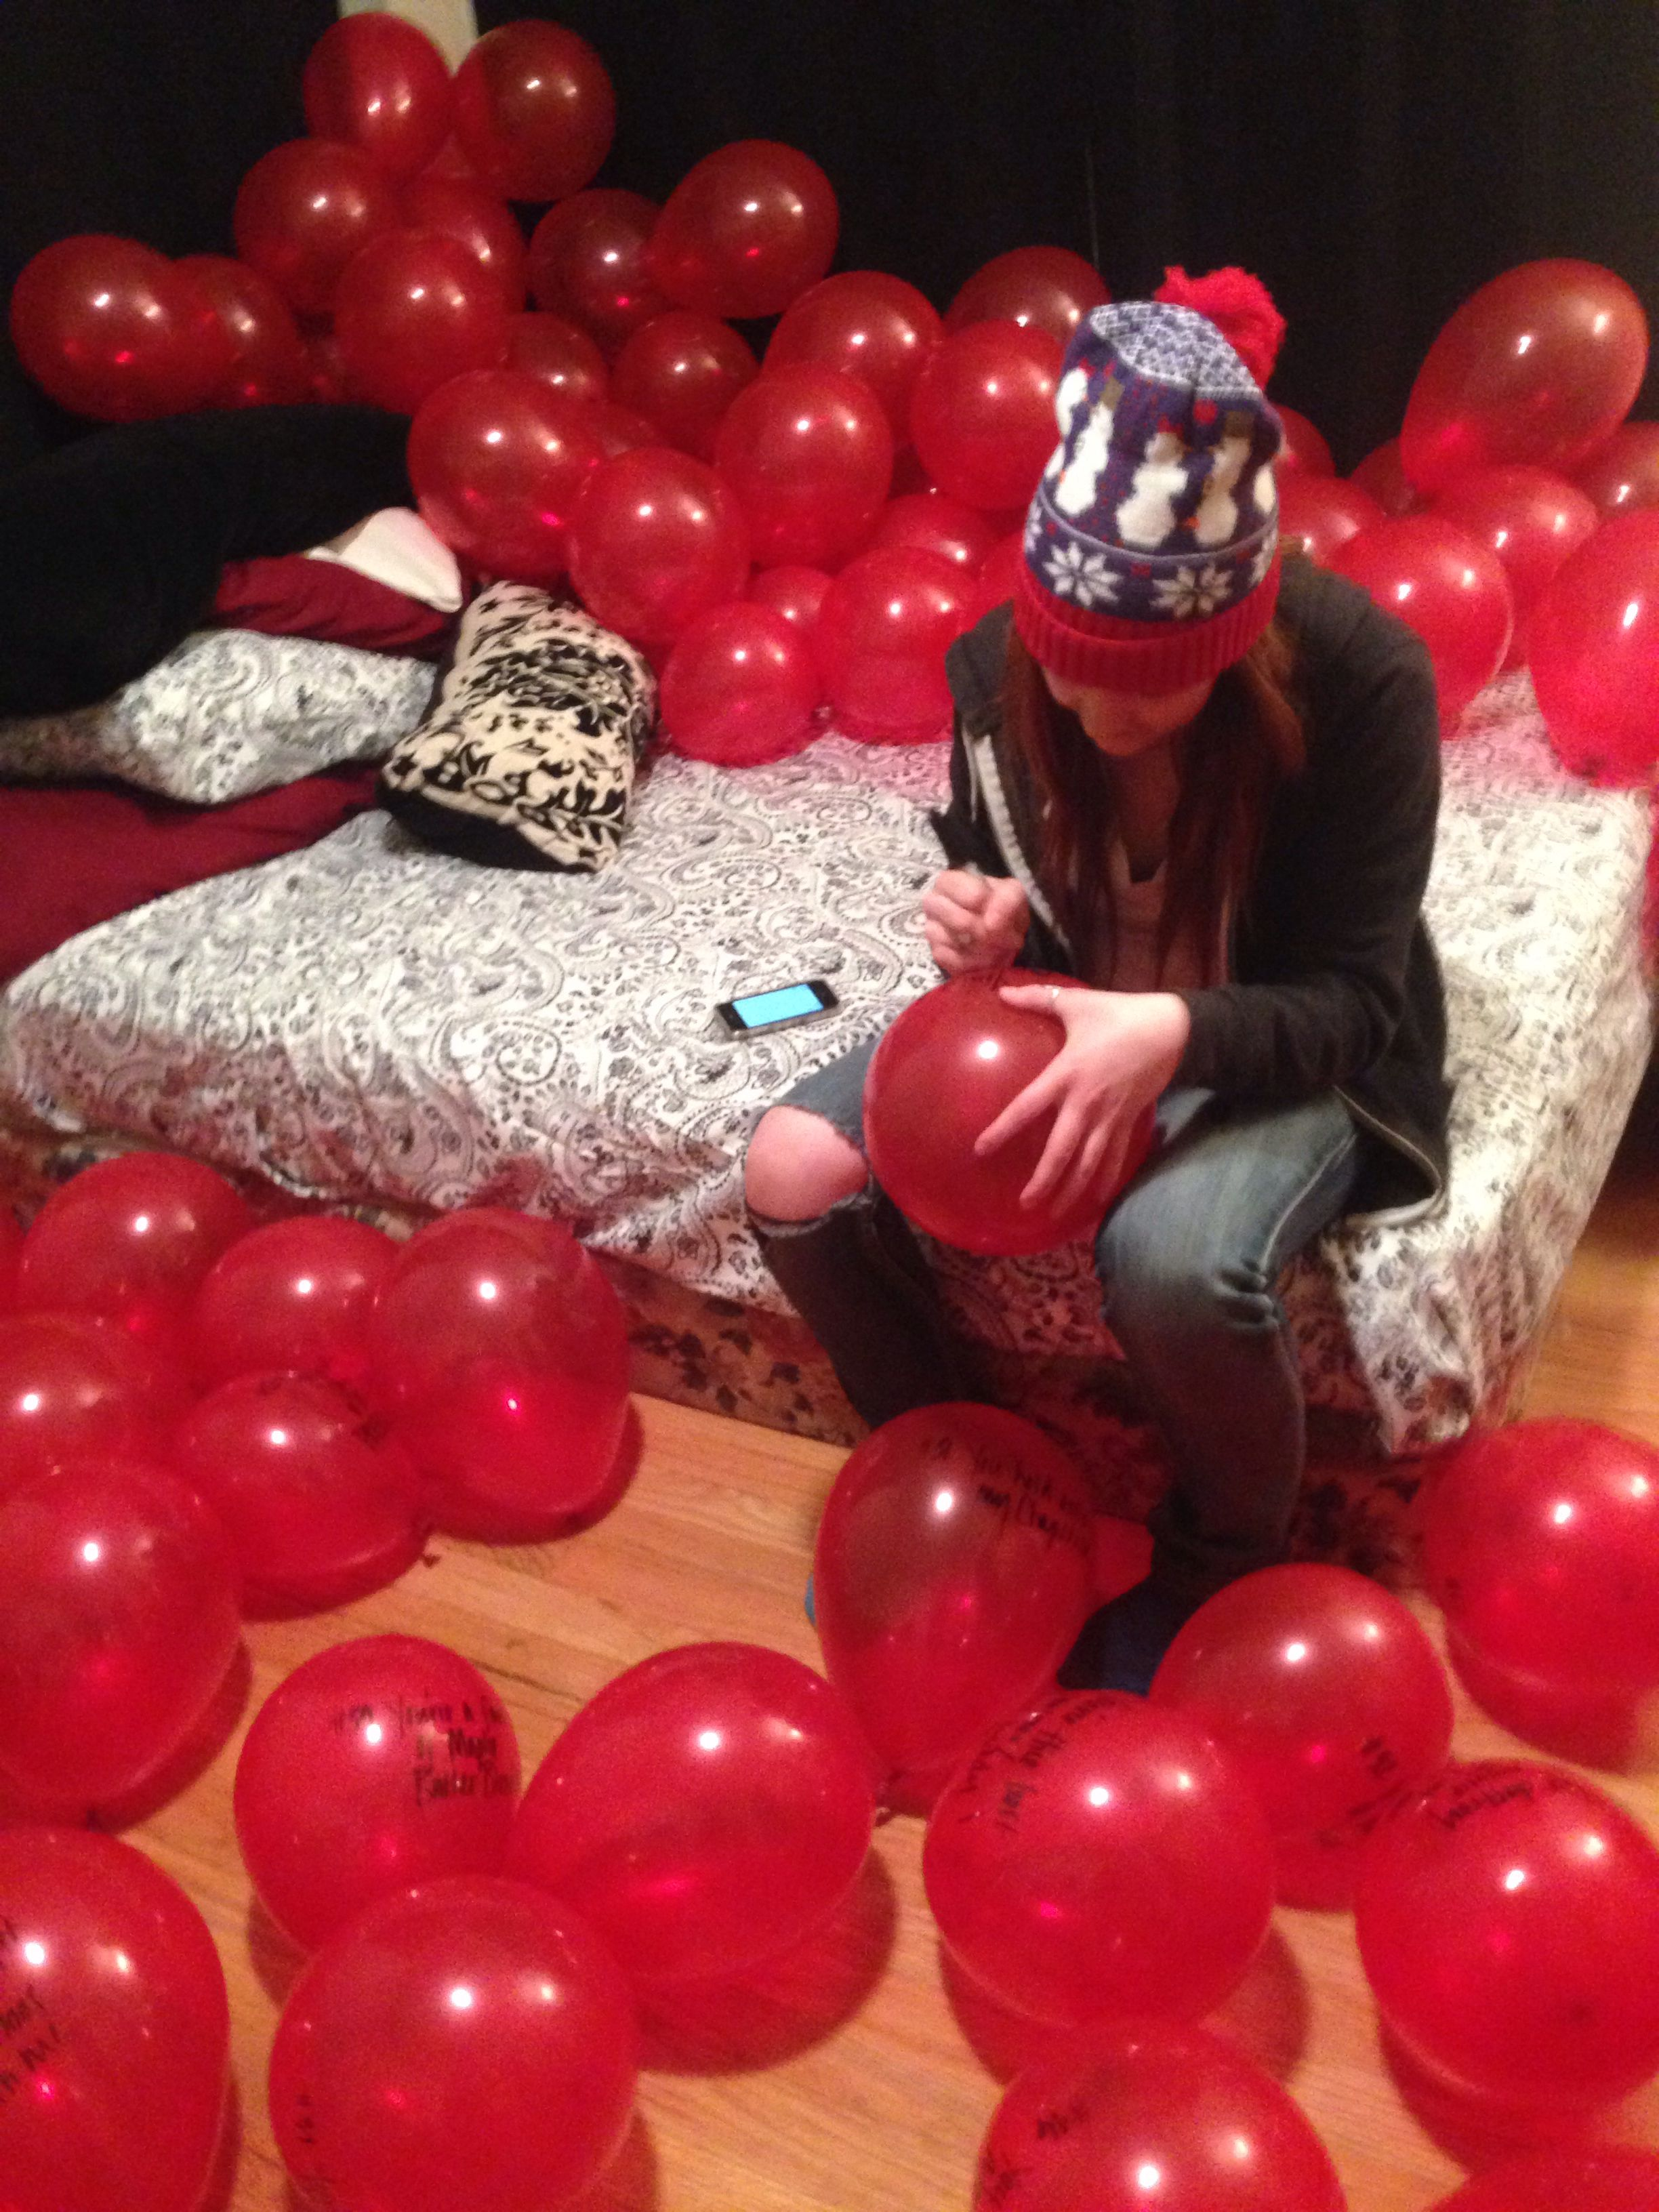 Listening To The Song 99 Red Balloons Then Writing On 99 Red Balloons The Things You Love About Your Partner Red Balloon Bday Party Balloons